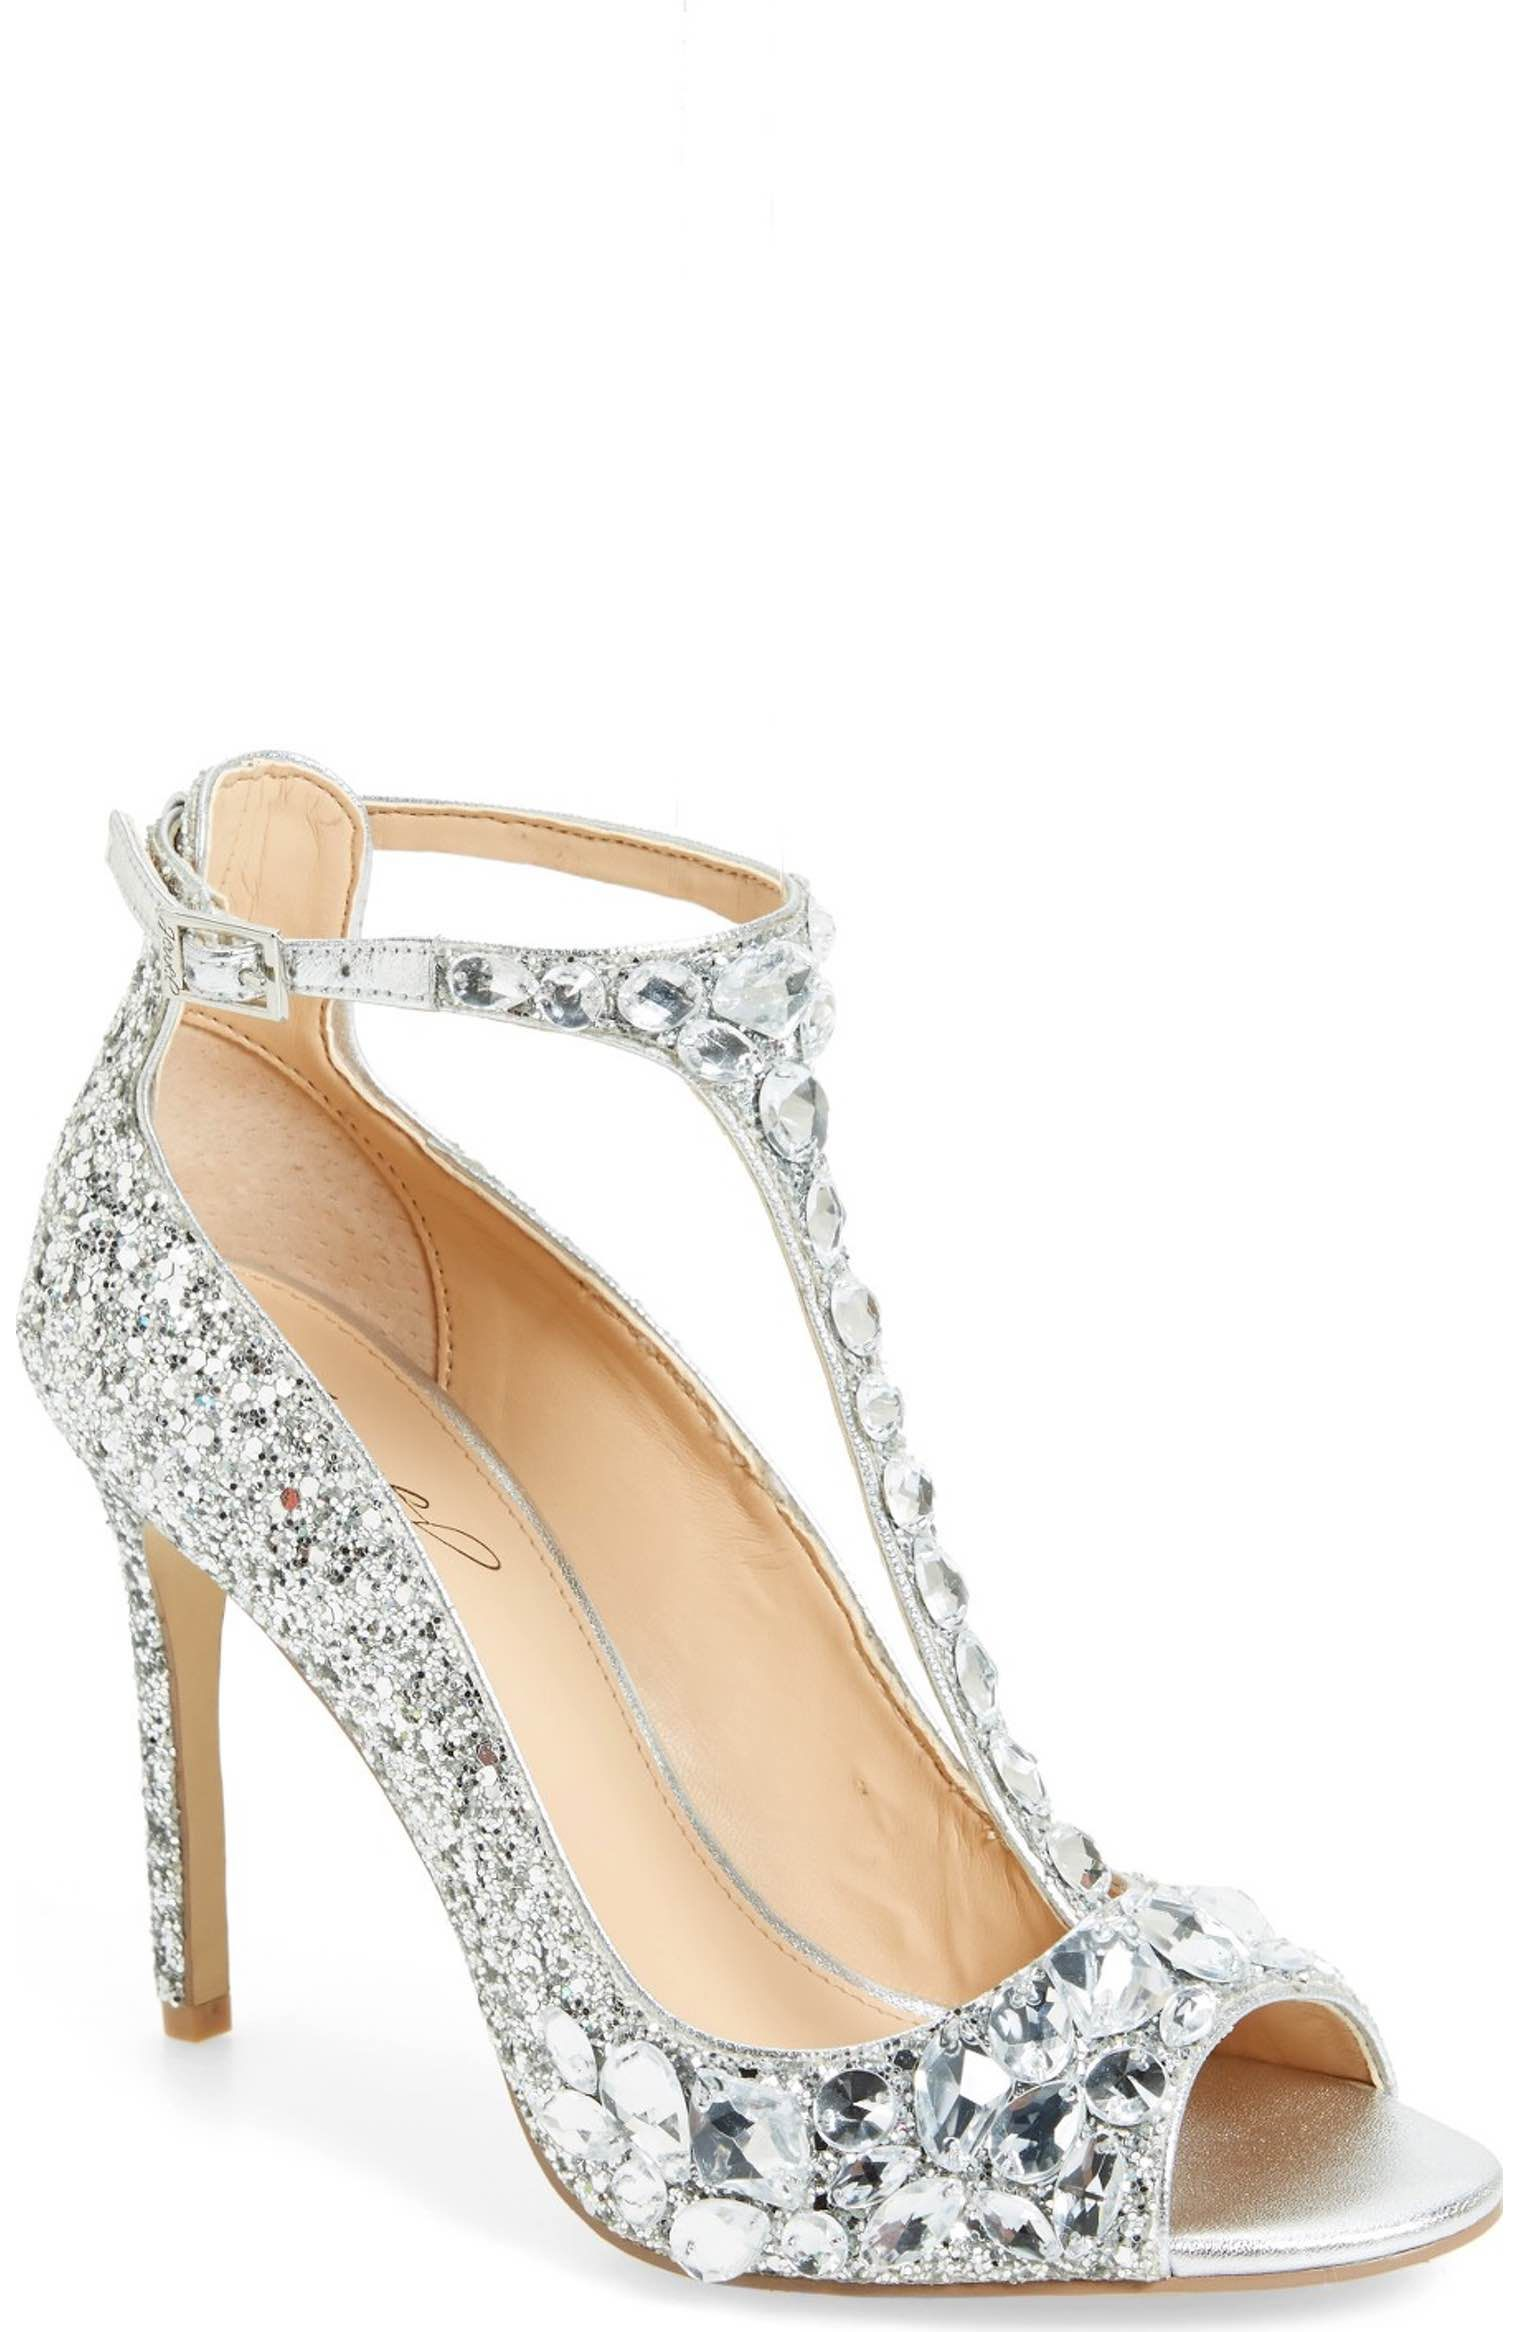 8aab4d4bd54 Main Image - Badgley Mischka Conroy Embellished T-Strap Pump (Women ...